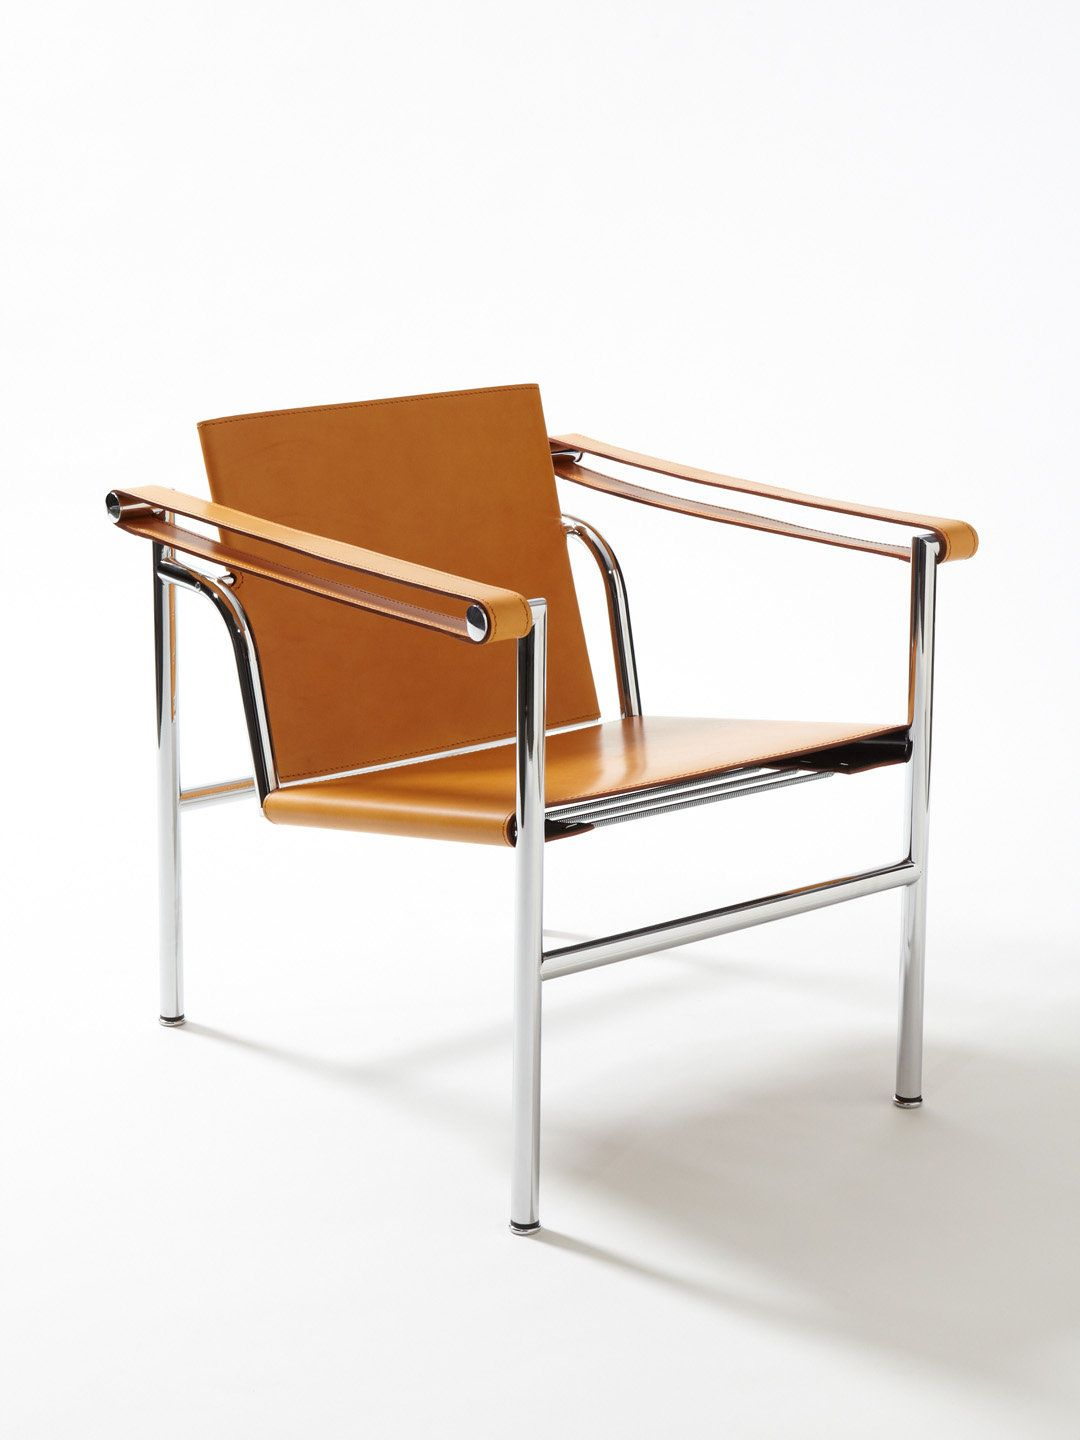 Exclusive Lc1 Sling Chair By Cassina At Gilt Chair Design Corbusier Furniture Corbusier Chair